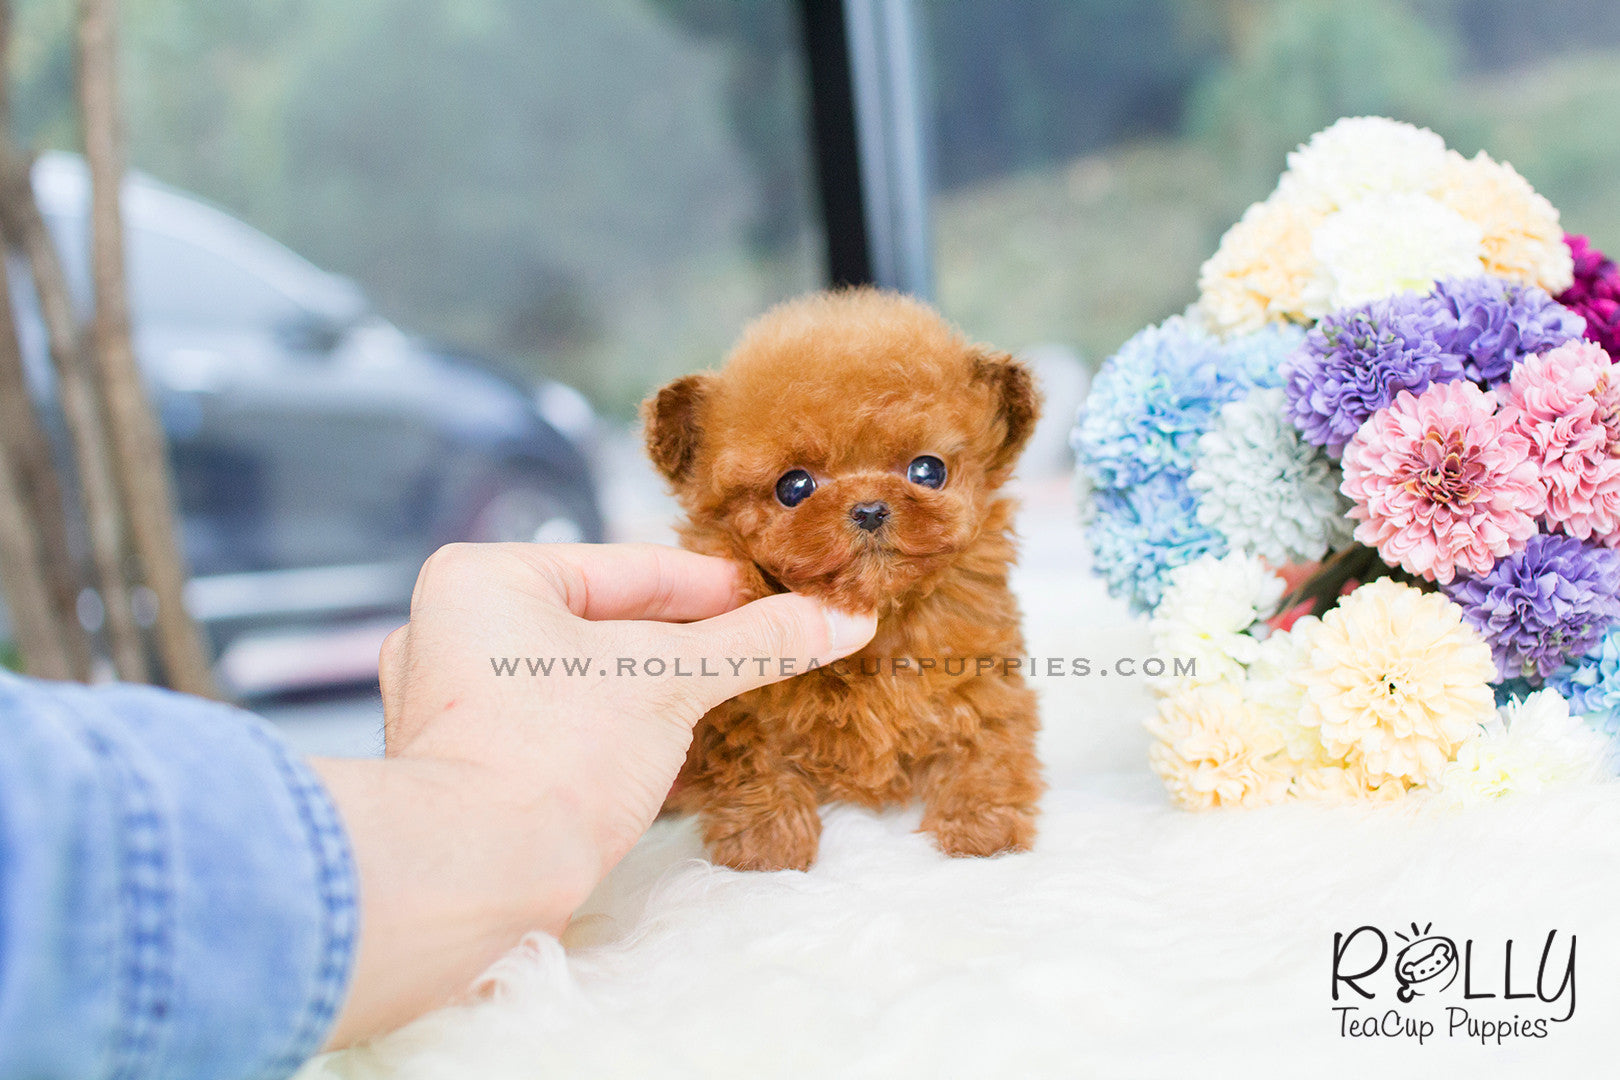 American Express Near Me >> Zoey - Poodle. F– Rolly Teacup Puppies